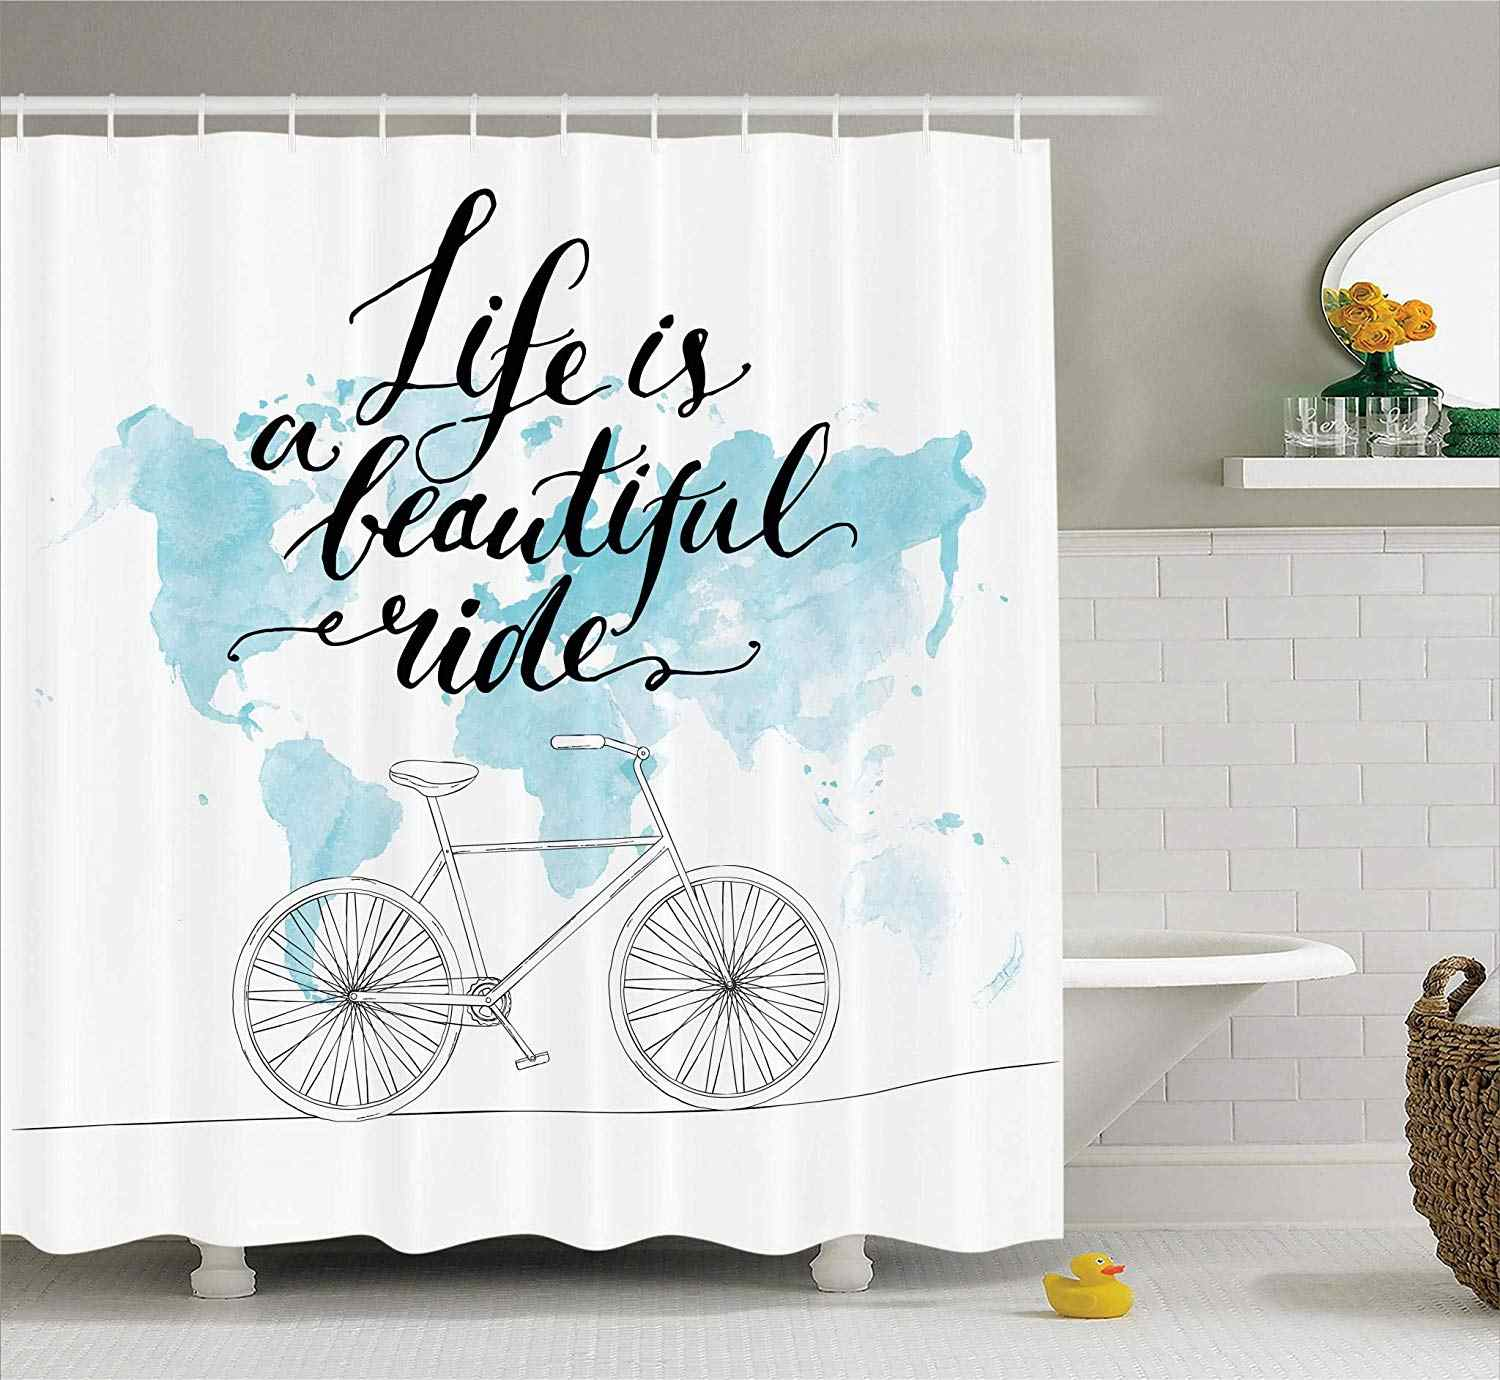 Bicycle Decor Collection Inspirational Cycling Picture With World Map Polyester Fabric Bathroom Shower Curtain Set With Hooks